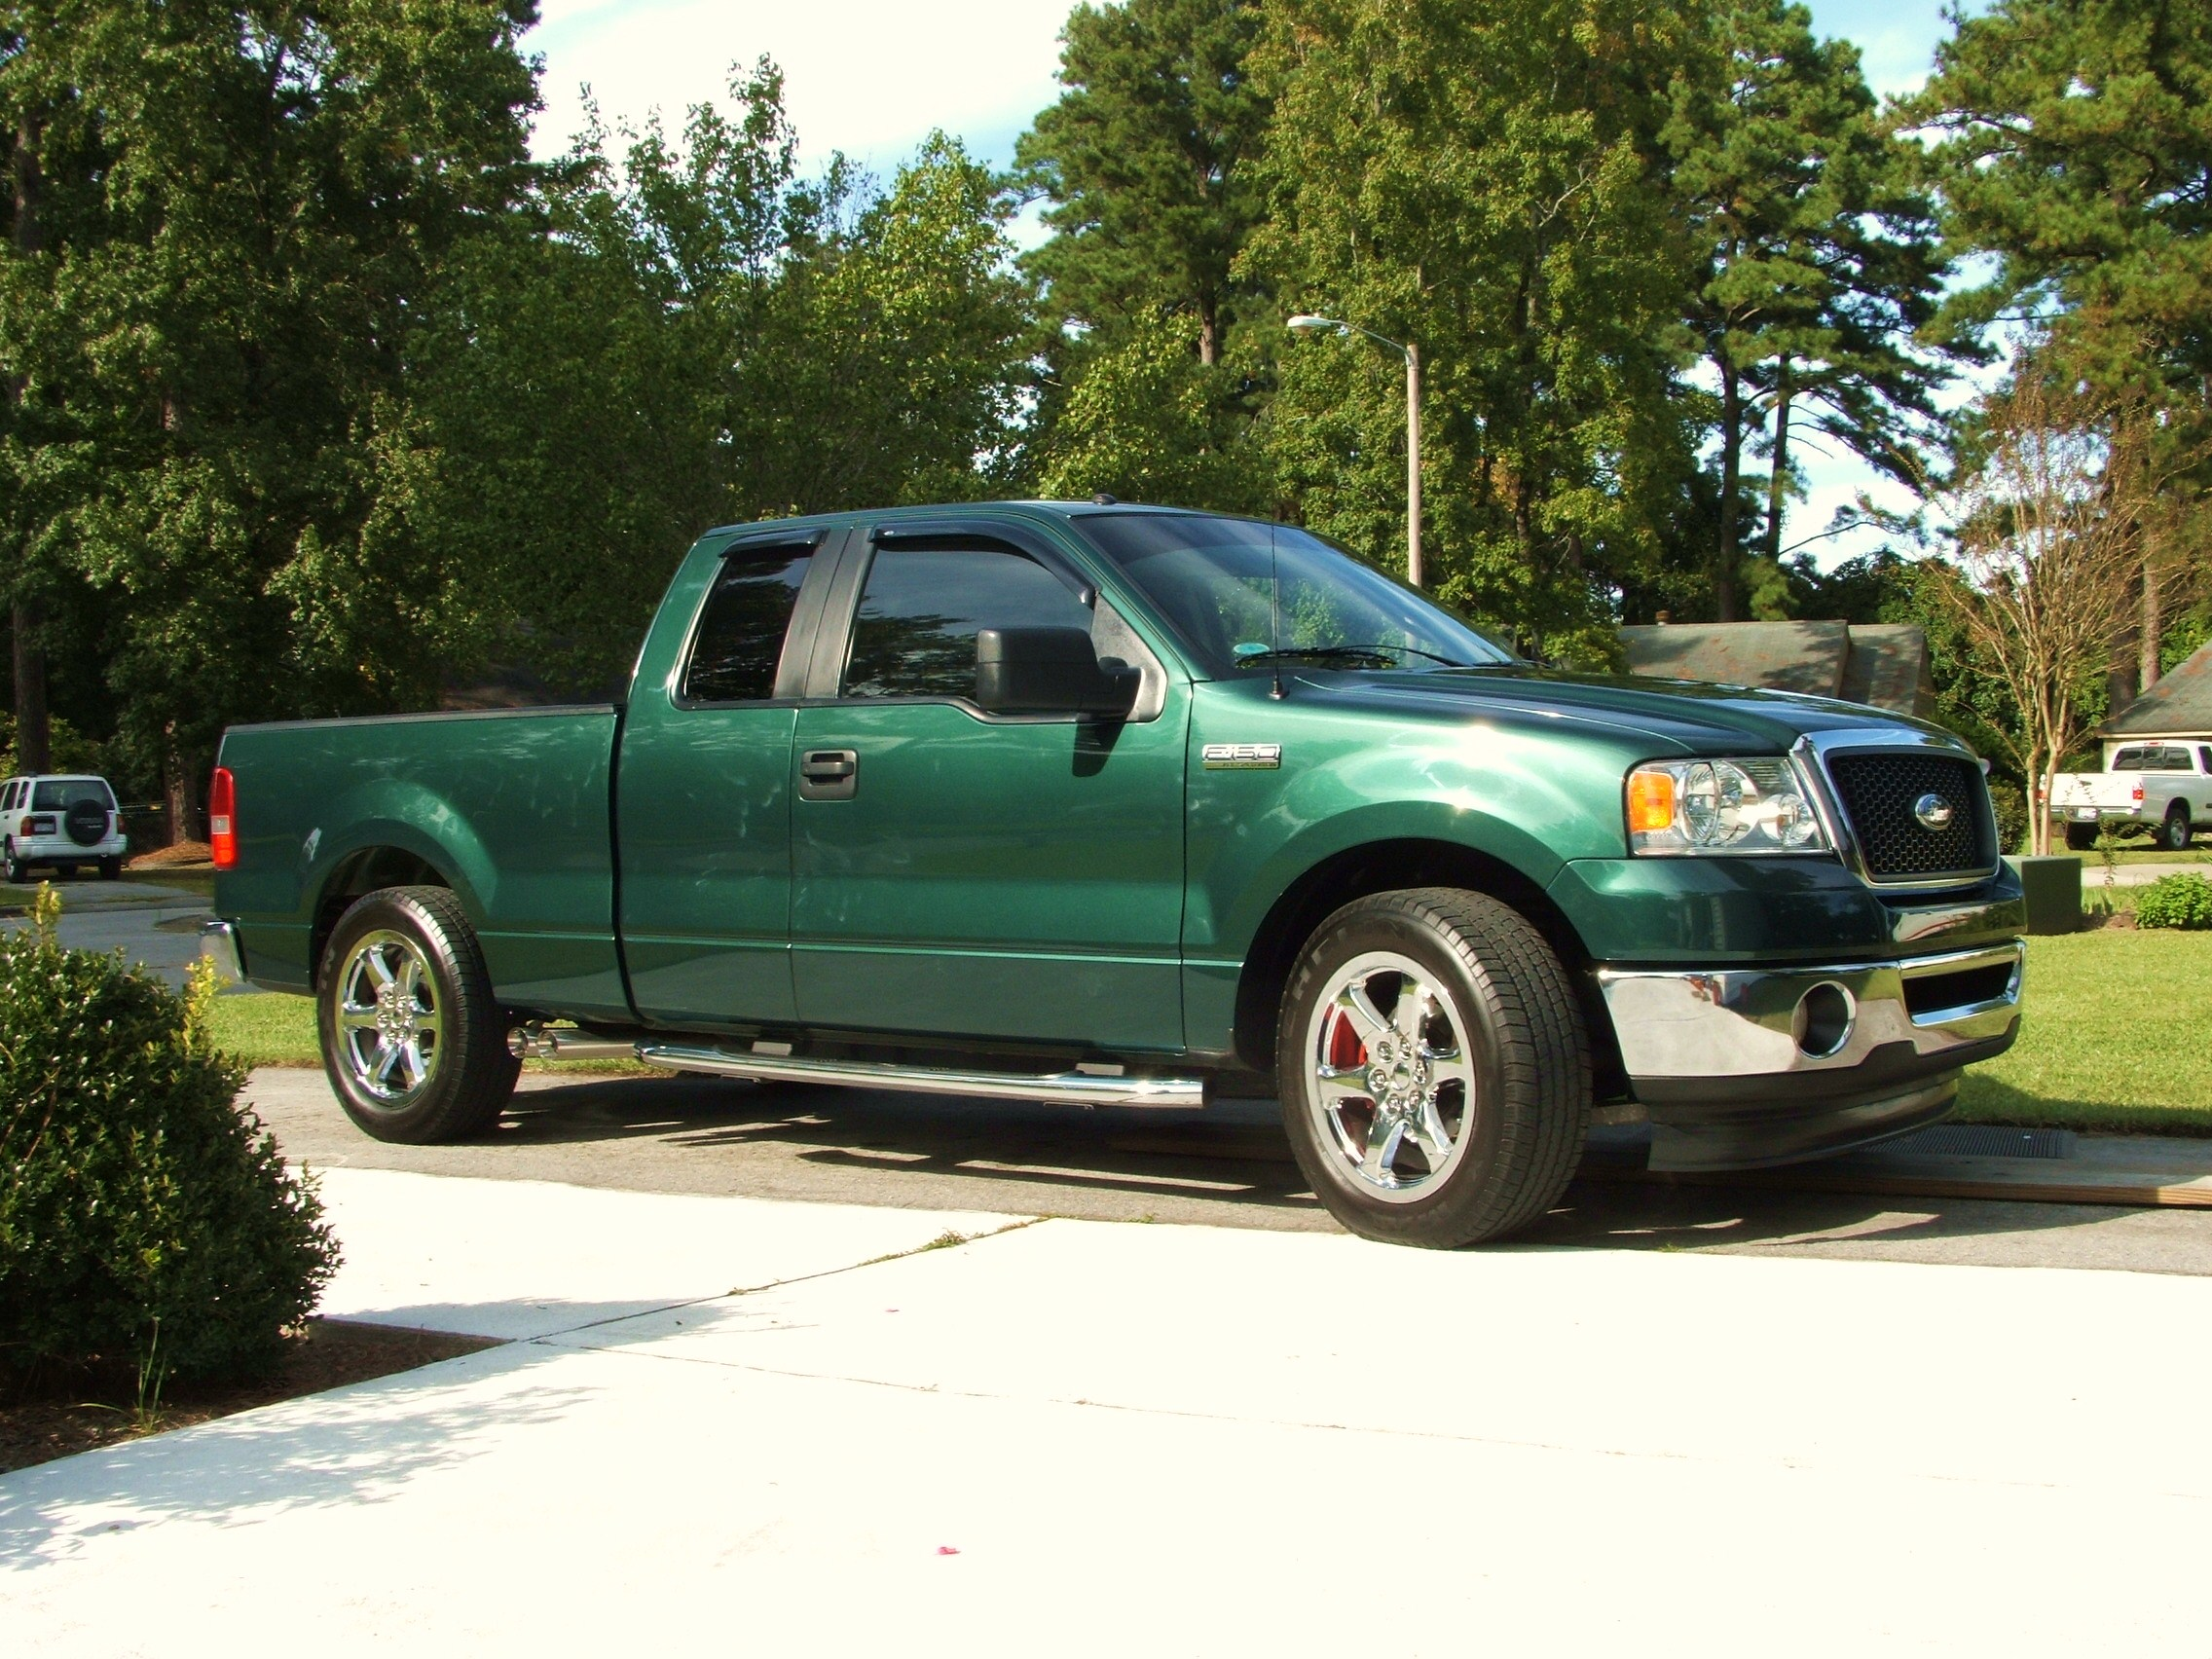 2007 ford f150 xlt picture mods upgrades